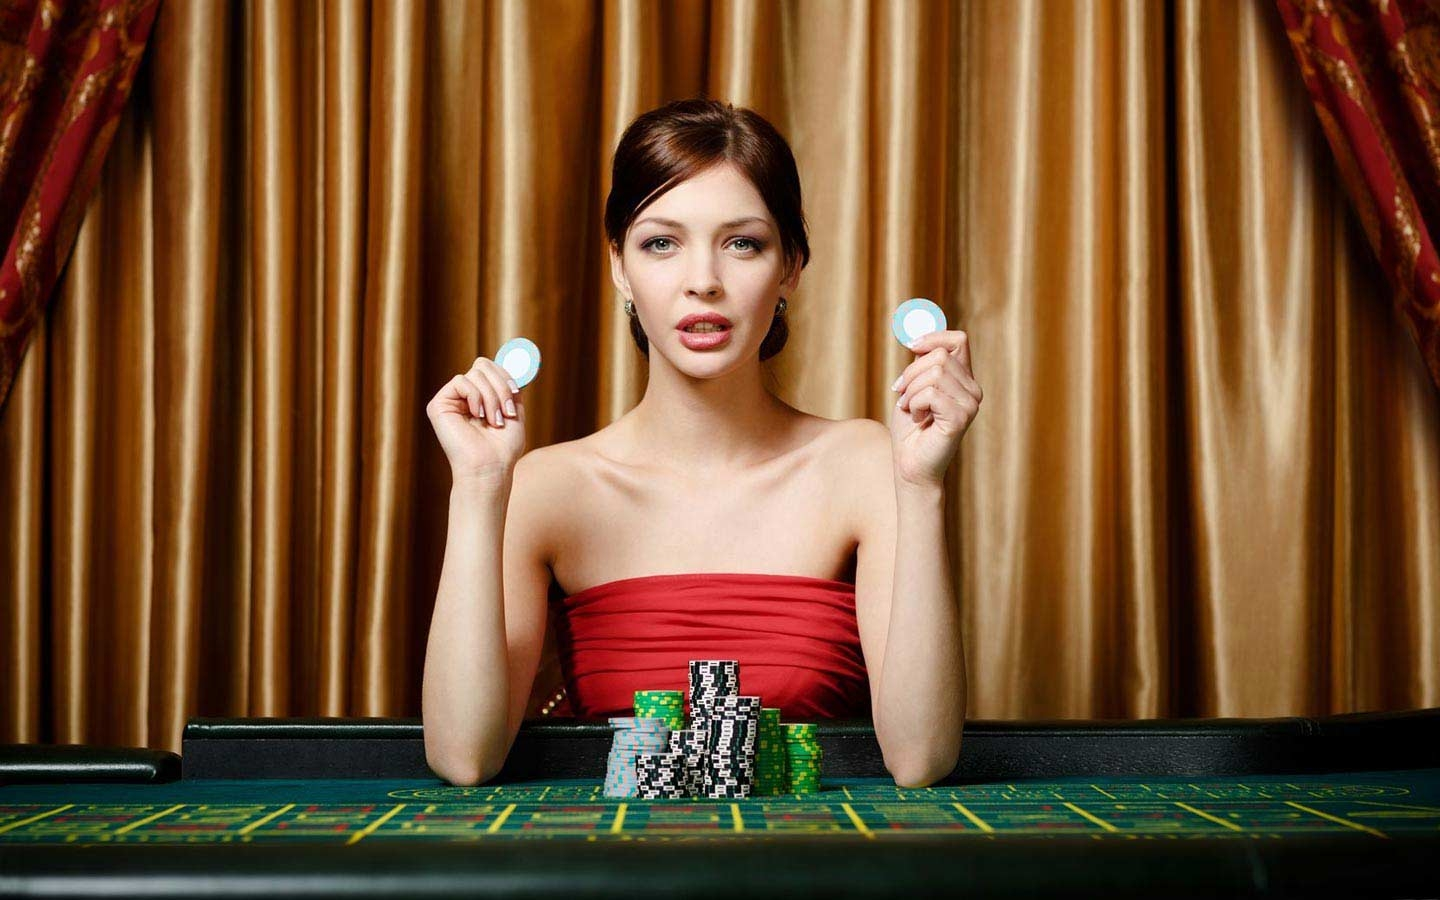 poker-girl-pictures